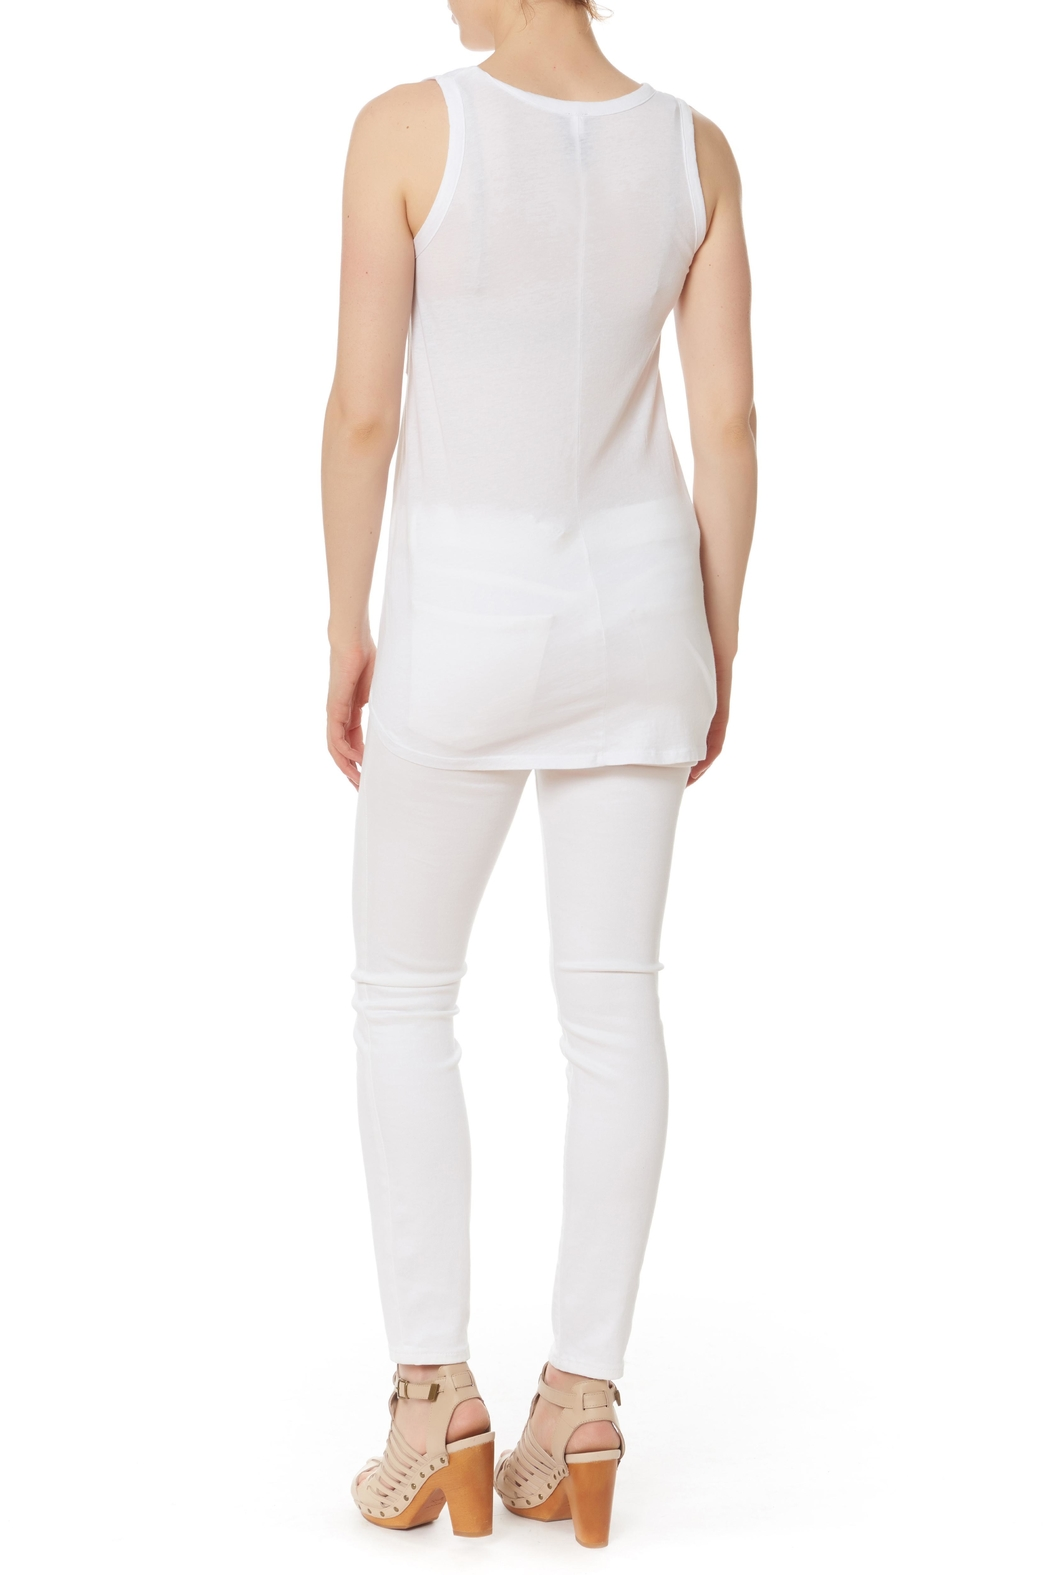 Bobi Los Angeles Side Knot Top - Front Full Image